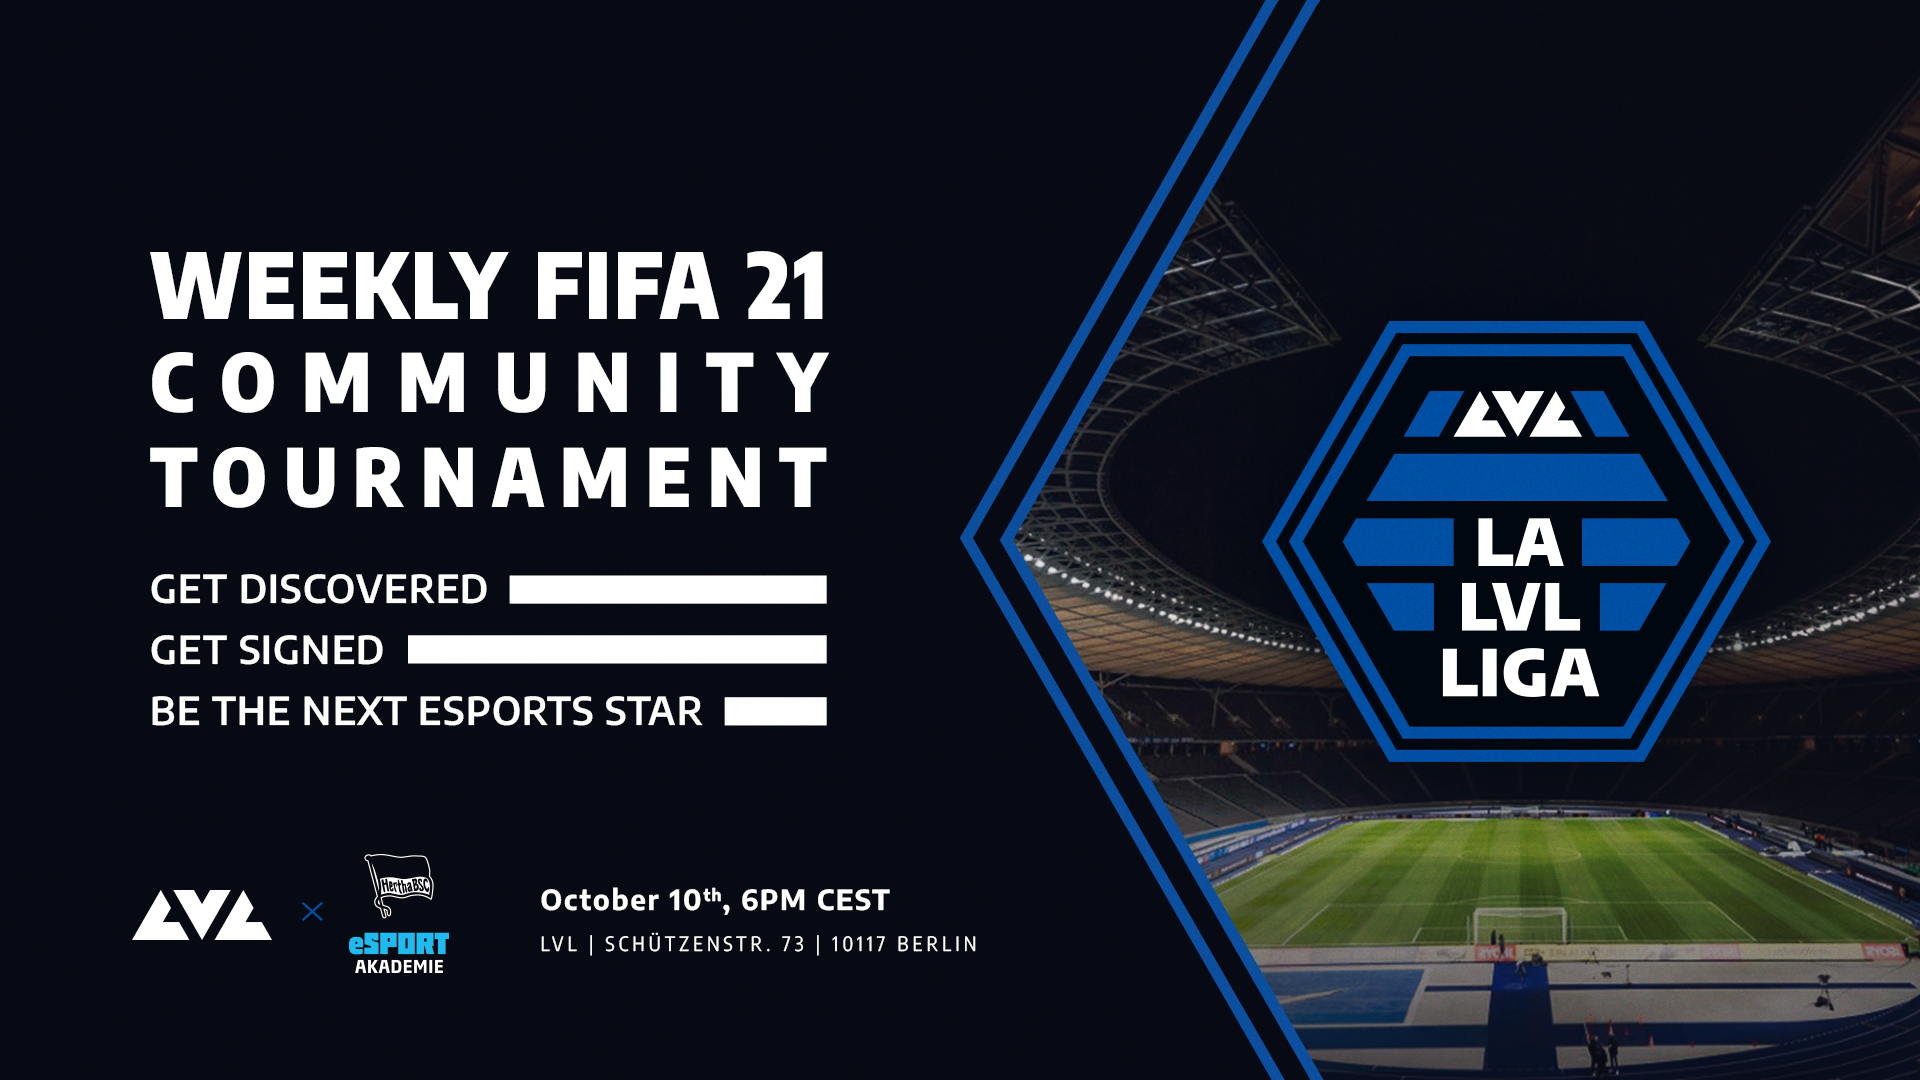 Hertha BSC LVL partnership - LVL joins forces with Hertha BSC to launch FIFA tournament